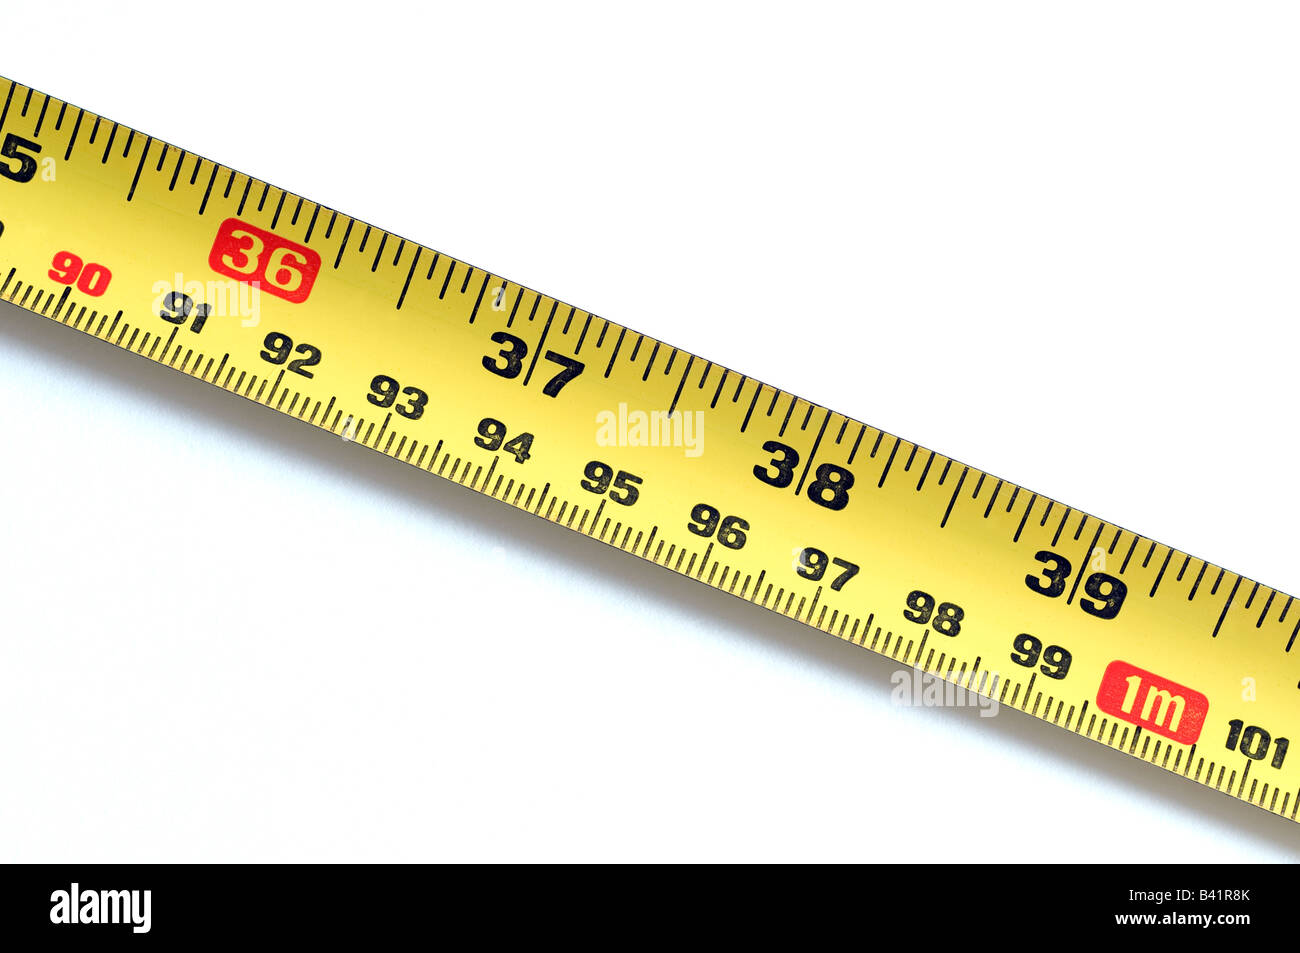 36 inches a 1 metre on a yellow steel rule - Stock Image